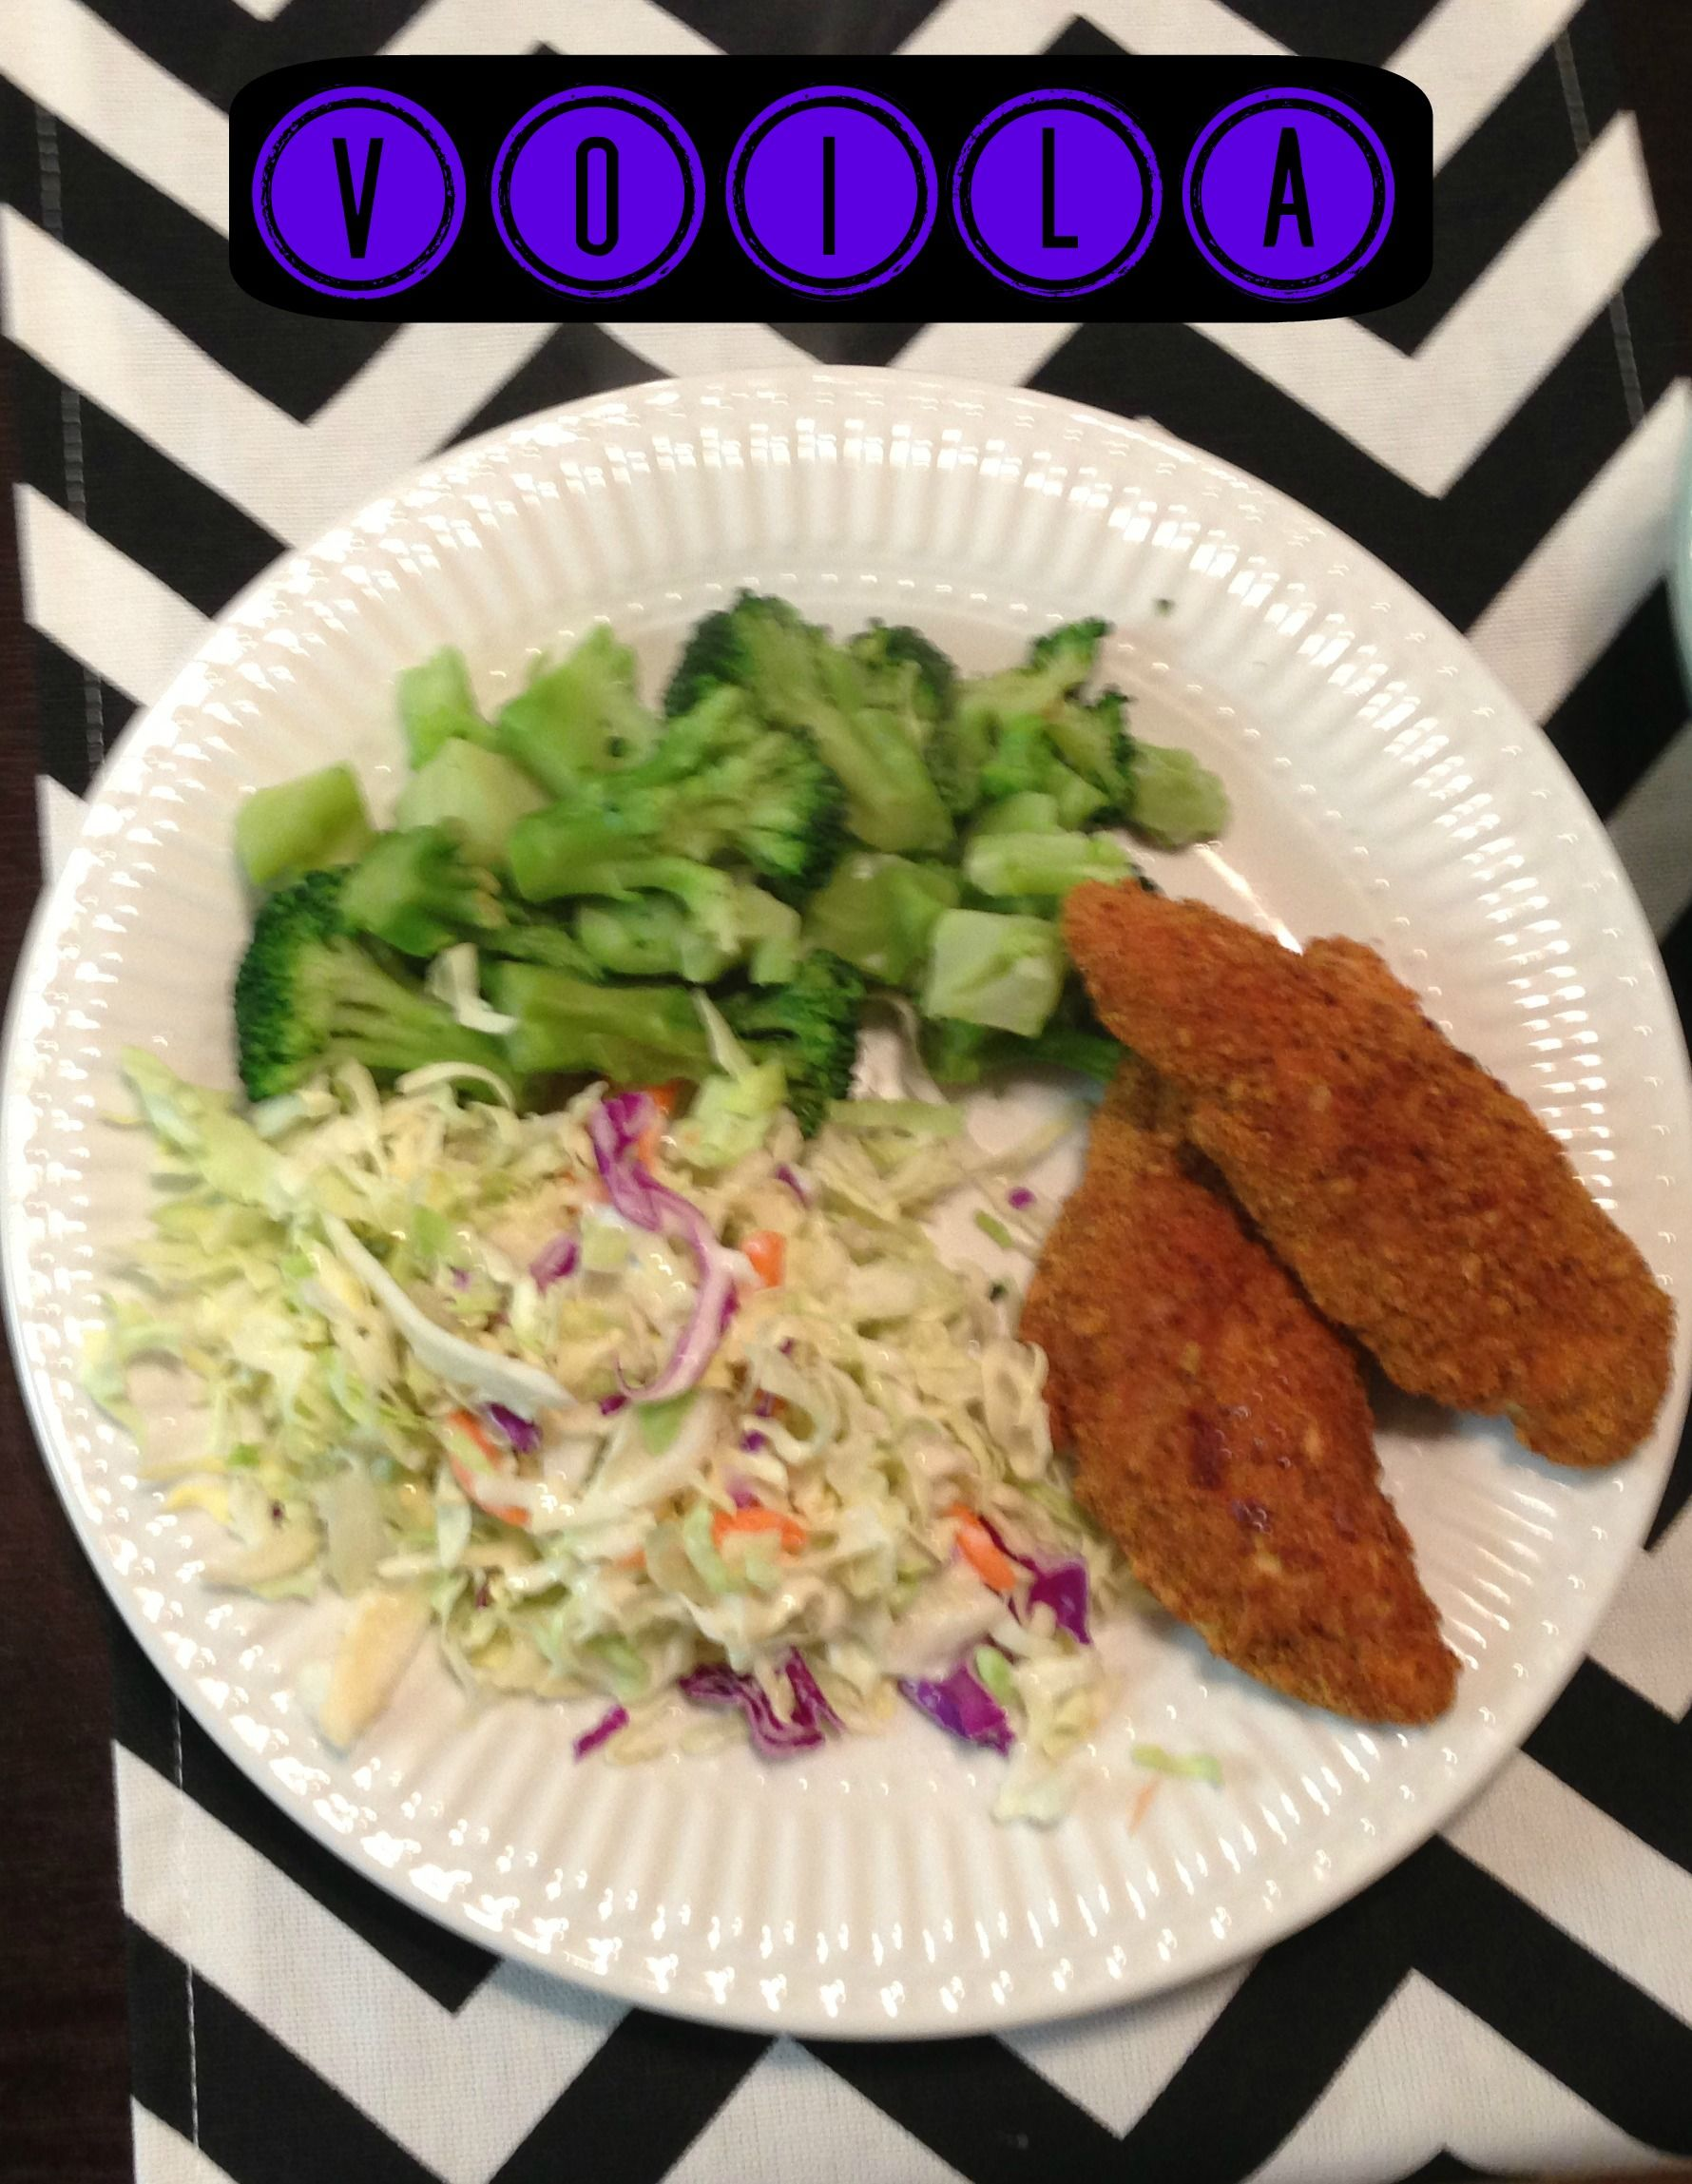 HEALTHY chicken tenders! Made with crushed up Fiber One cereal. Sooo making these!